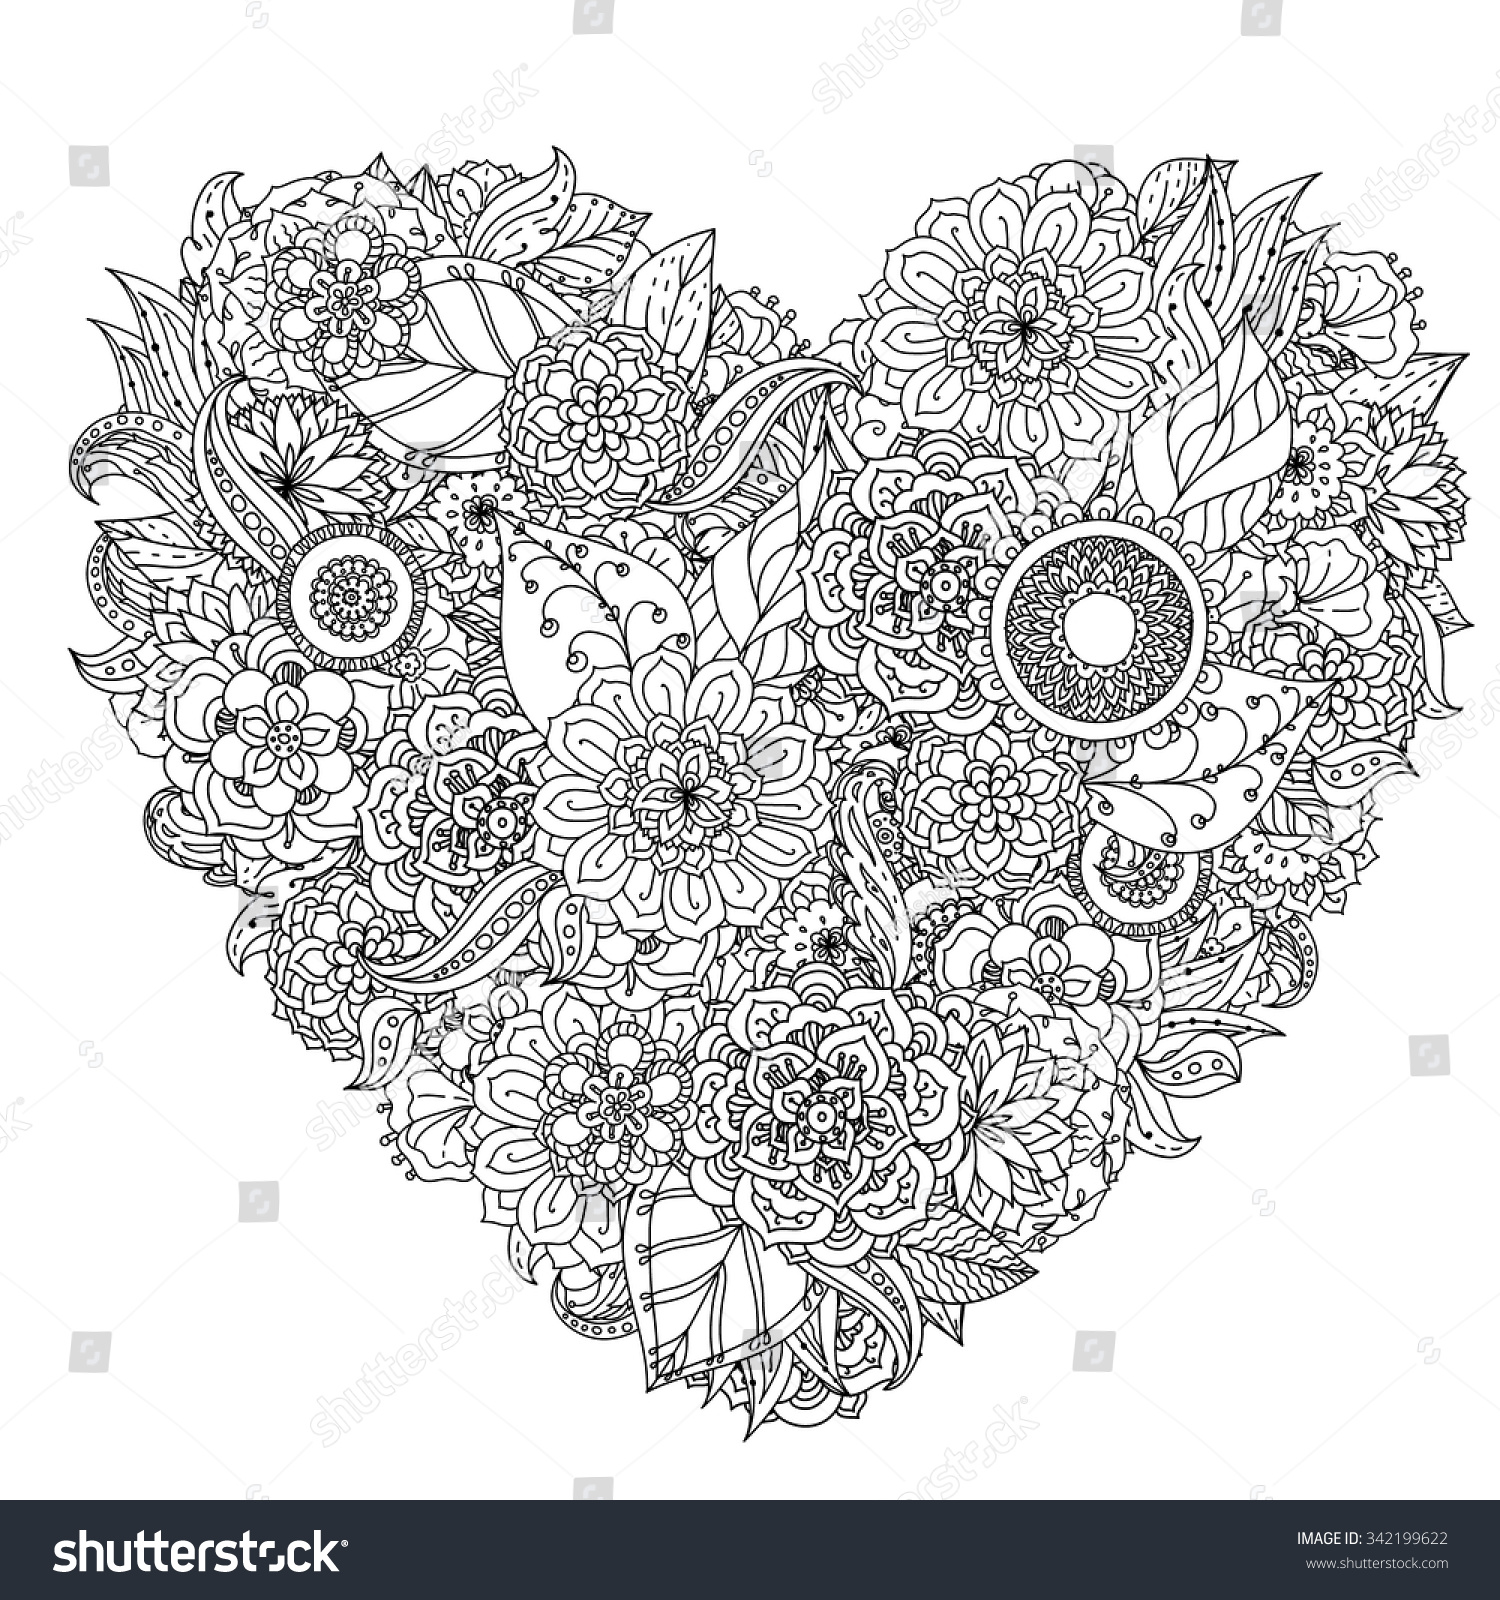 Hand Drawing Zentangle Element Black And White Flower